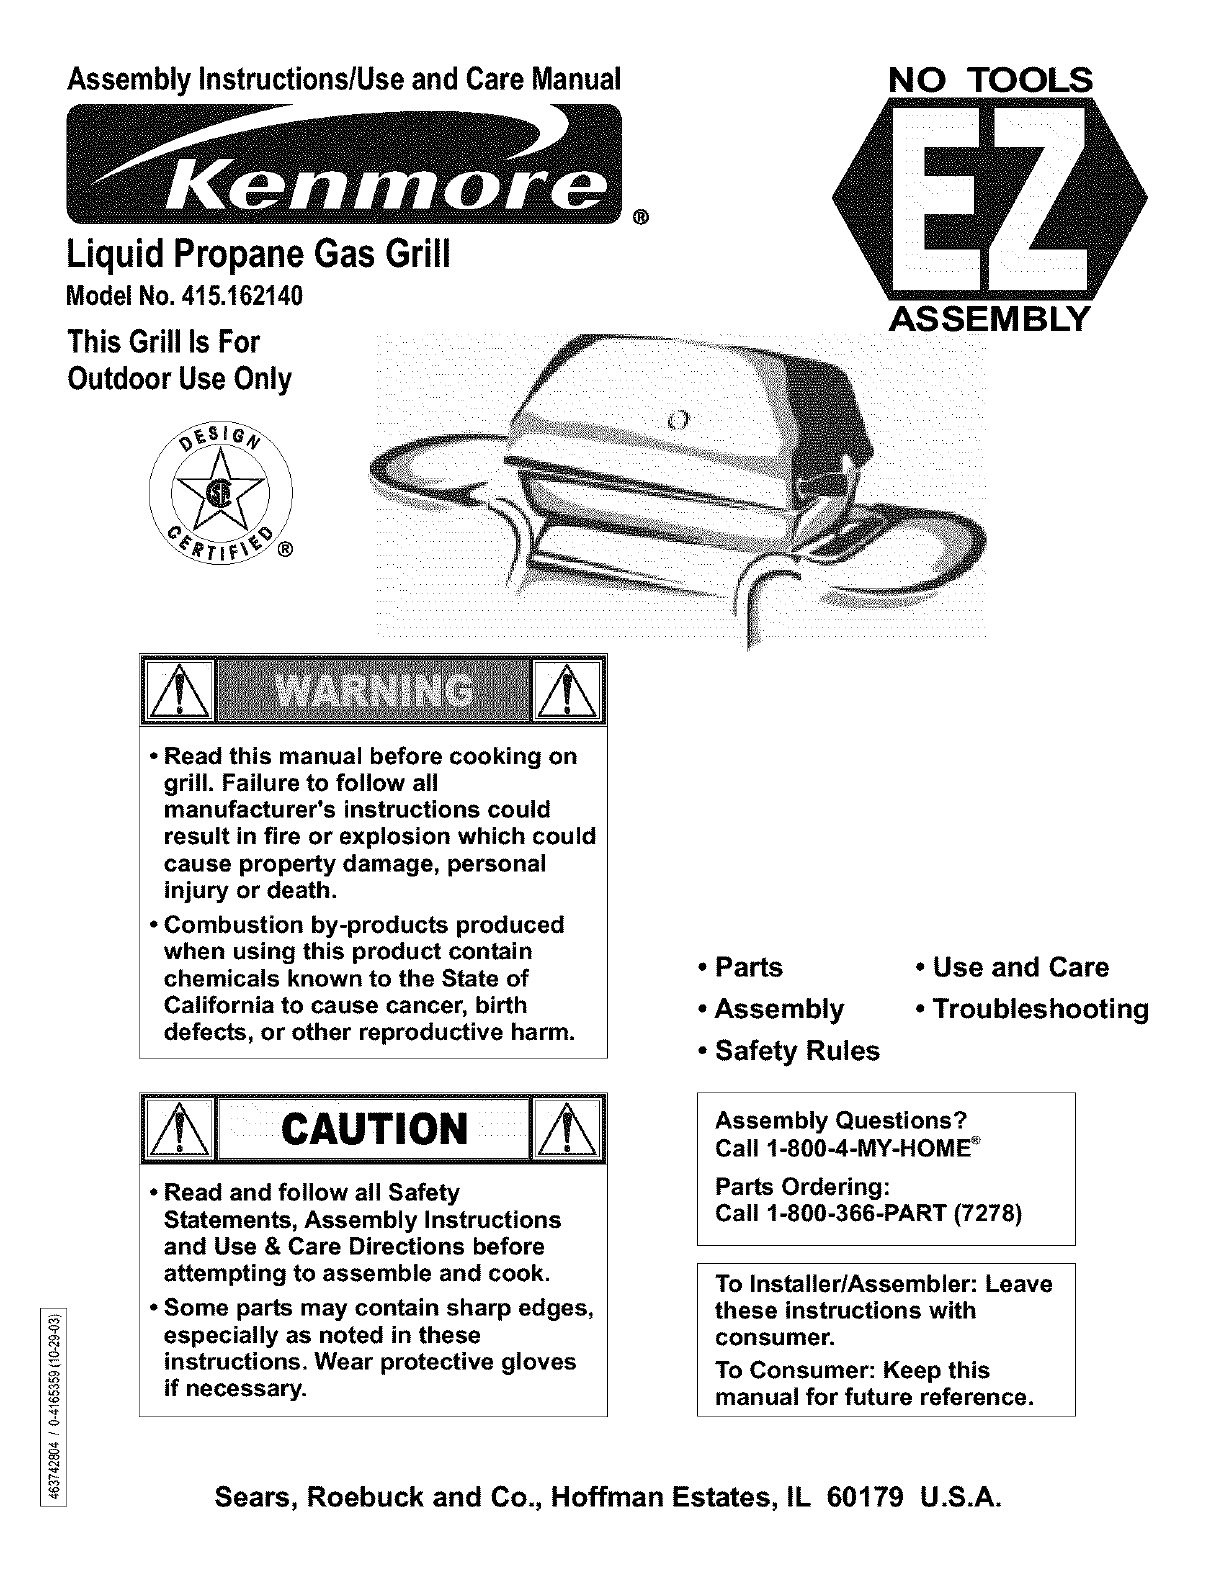 kenmore 415162140 user manual gas grill manuals and guides l0311316 rh usermanual wiki Kenmore Model 790 Electric Range Kenmore Dryer